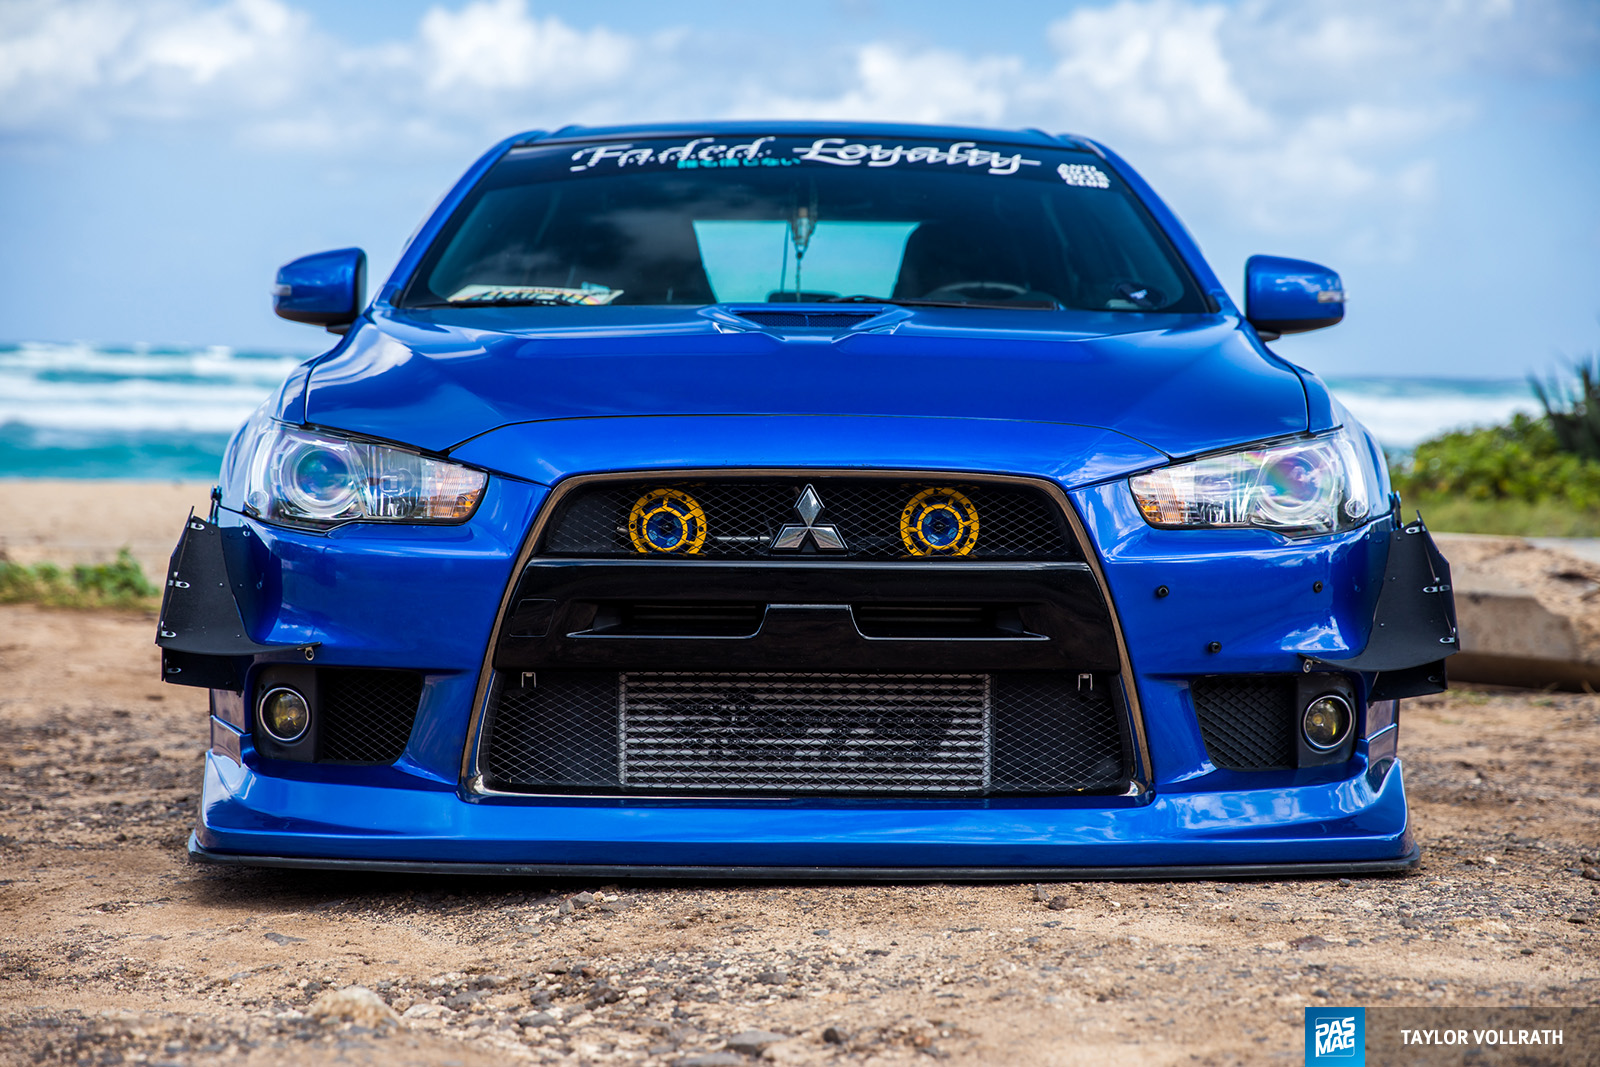 06 JM Andrada 2015 Mitsubishi Evolution X PASMAG Tuner Battlegrounds